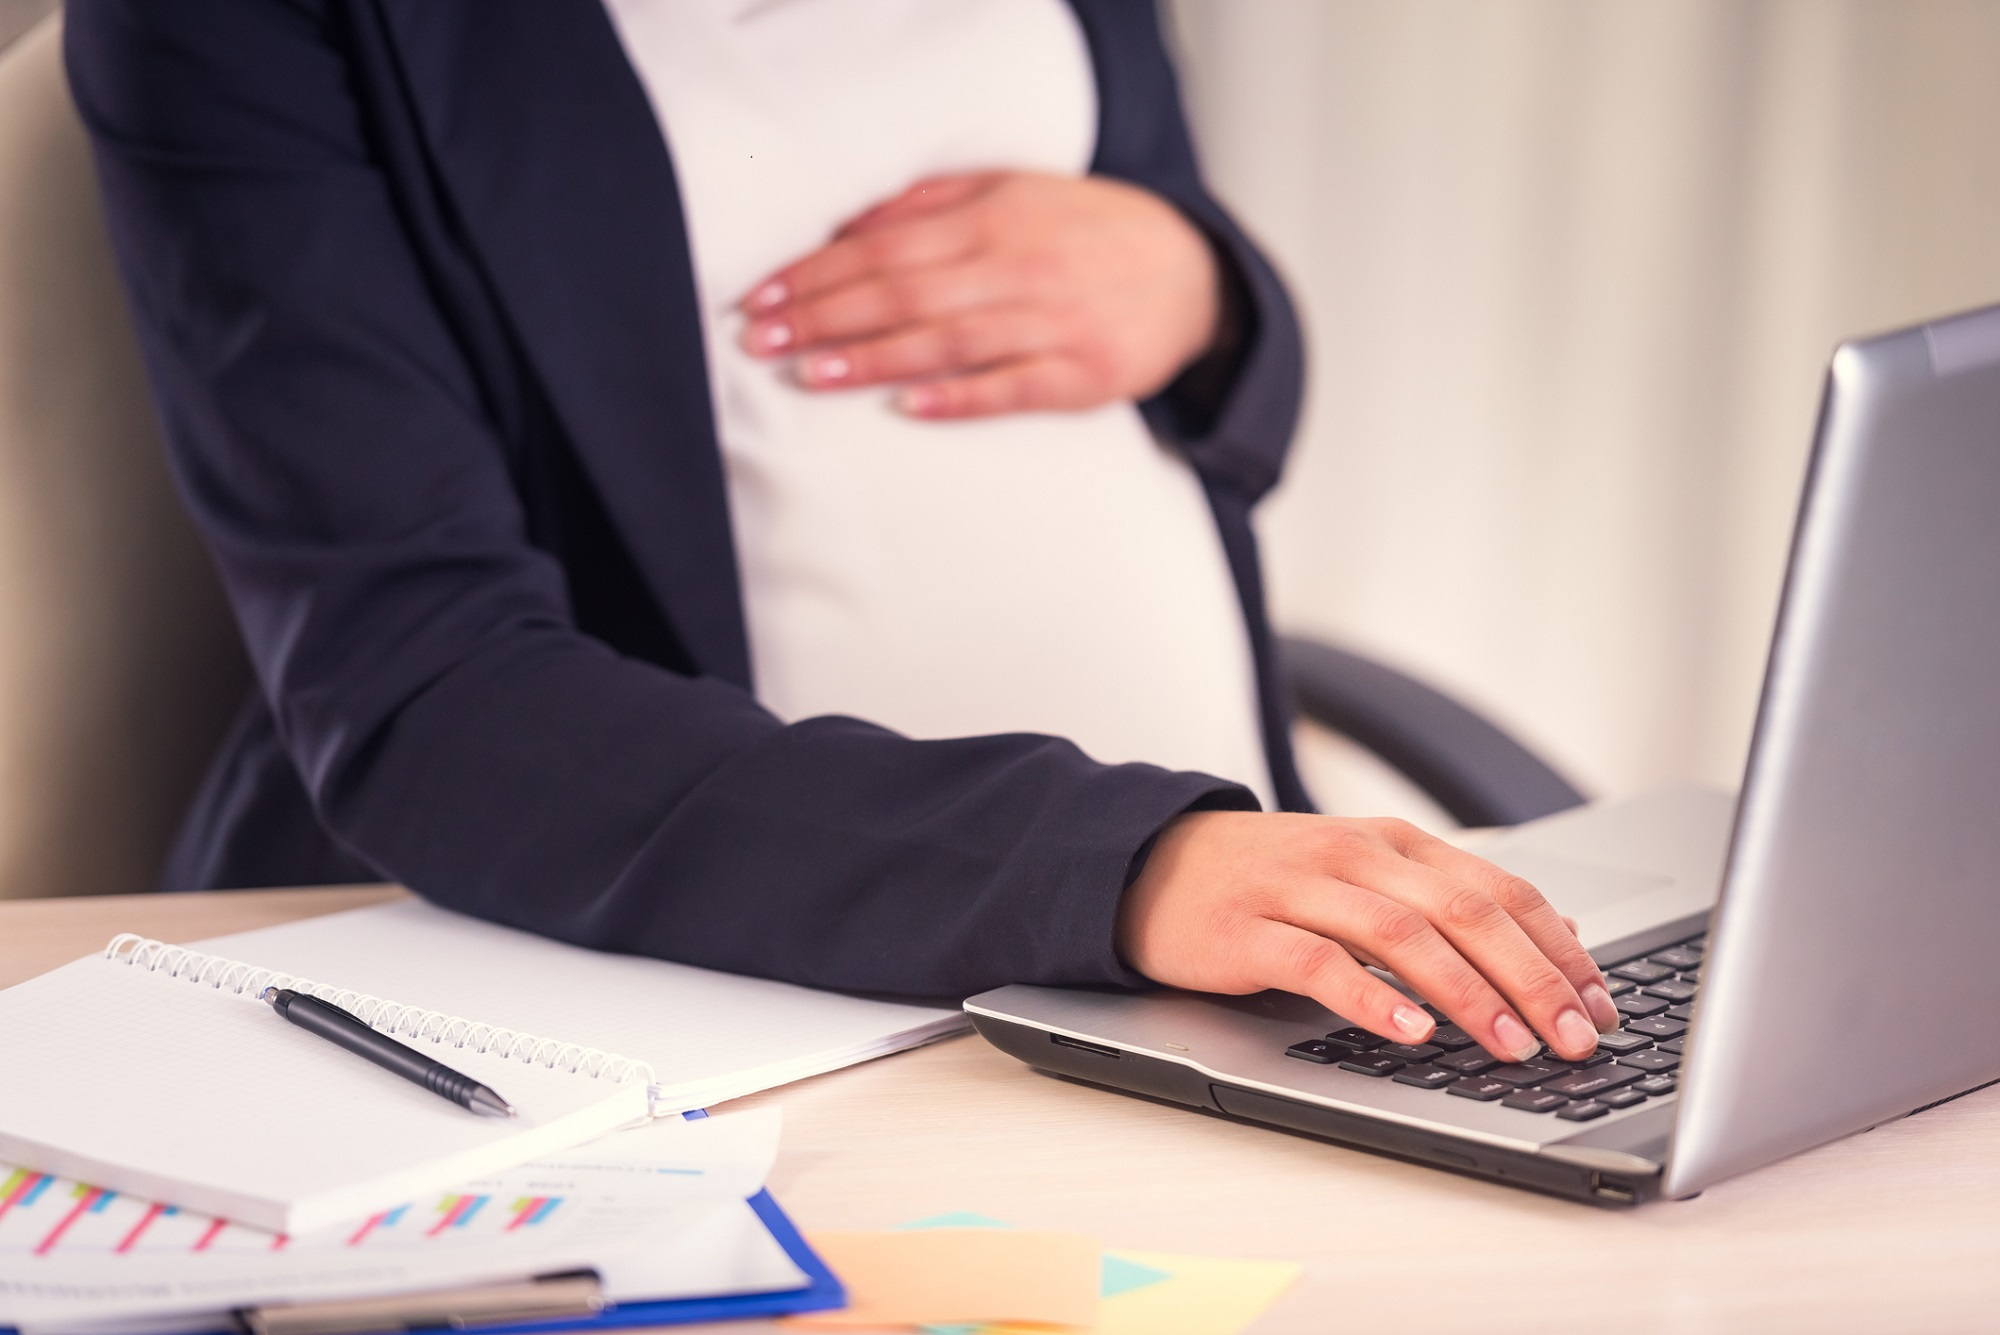 Pregnant Business Woman